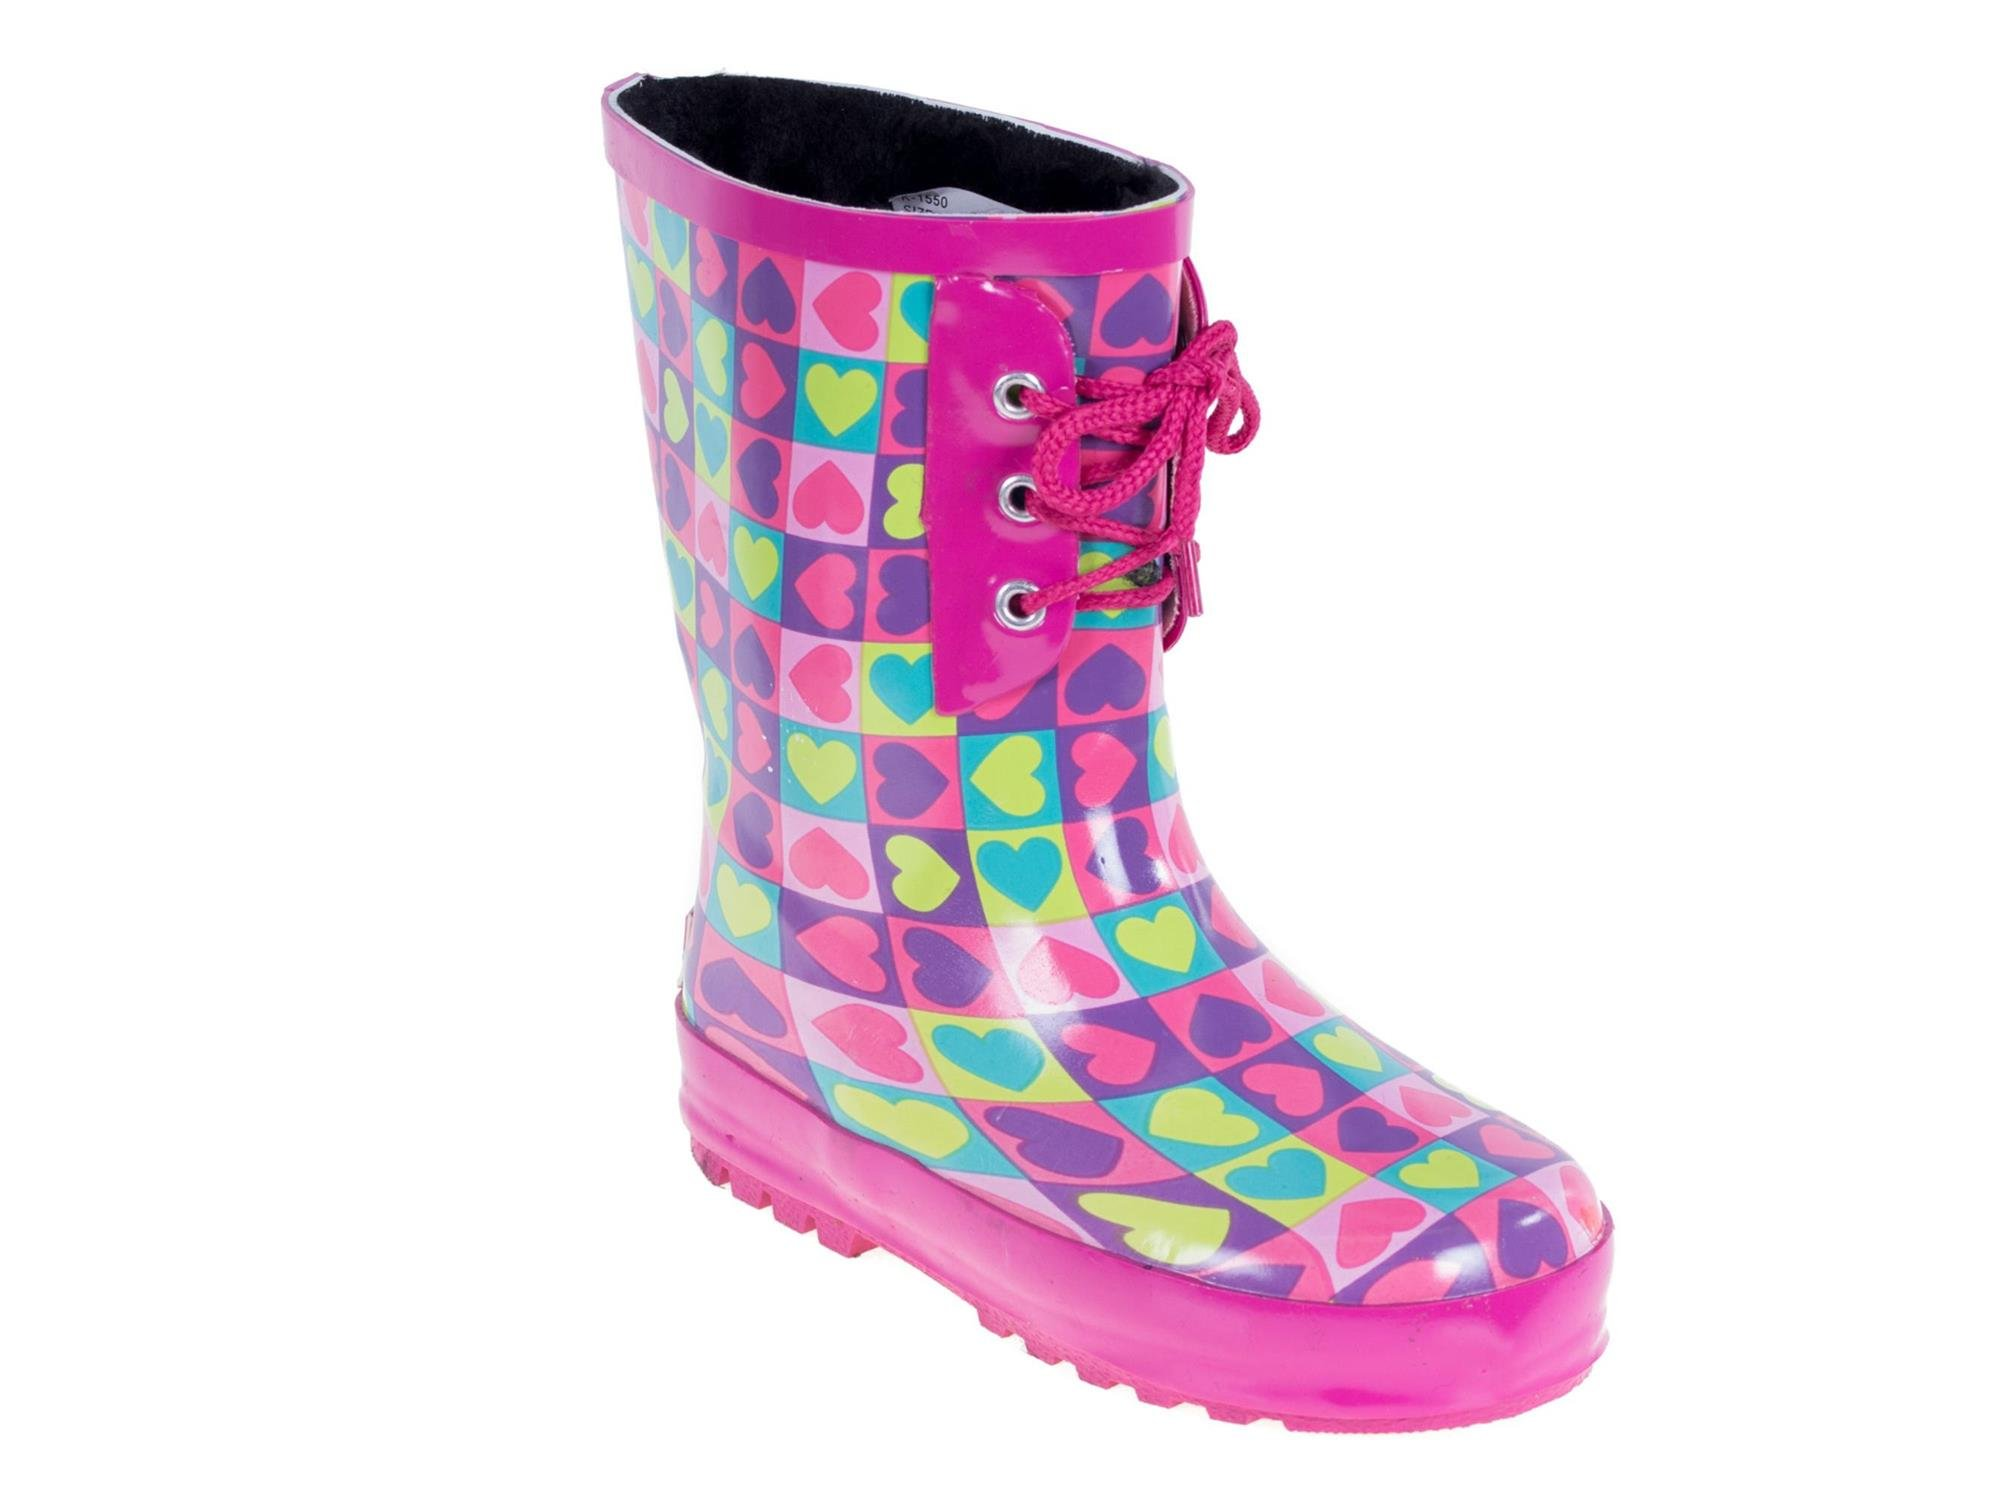 Forever Young Kid's Rubber Lace Up Heart Print Rainboots, 13, Pink